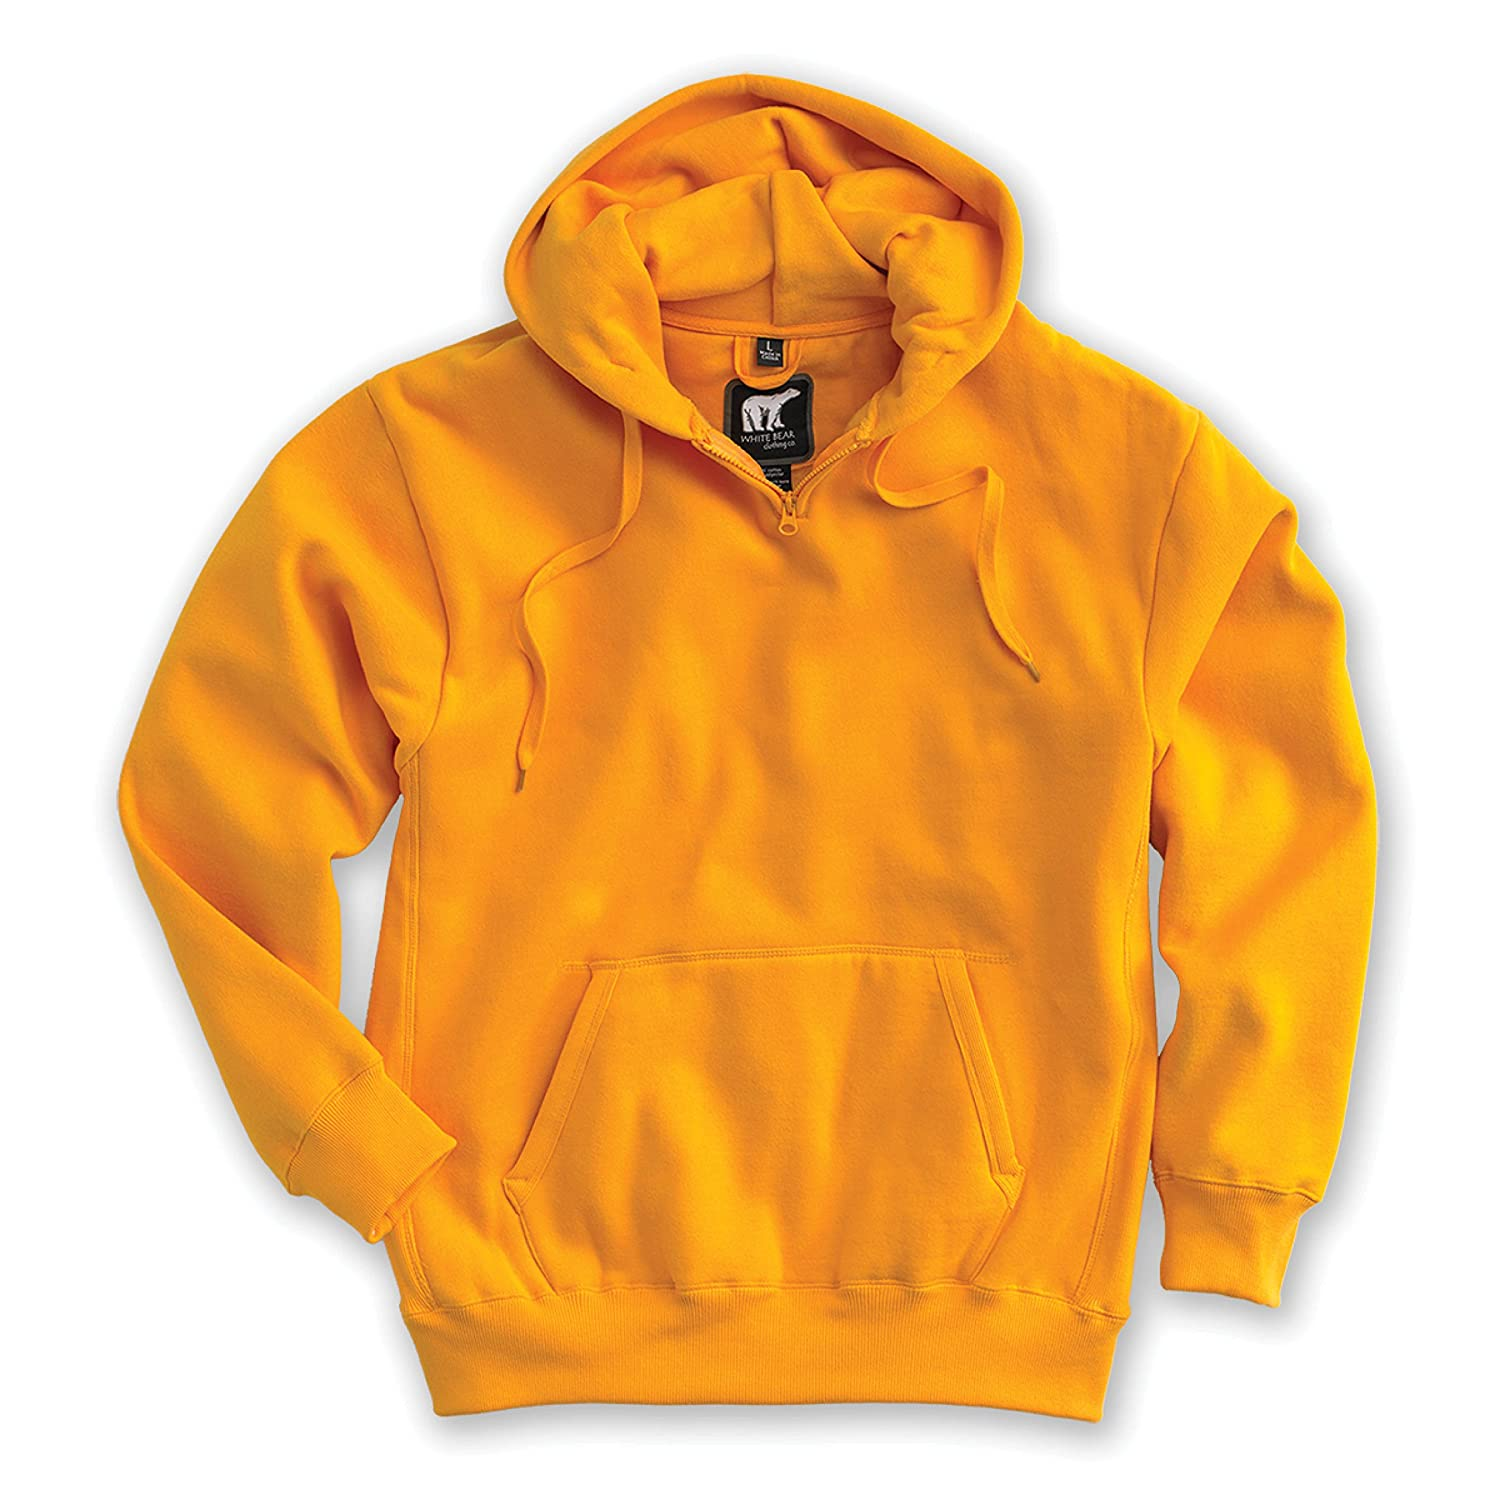 Style 1000 - Available in 18 Sizes: XXS-6XL LT-6XT Heavyweight Hoody White Bear Clothing Co